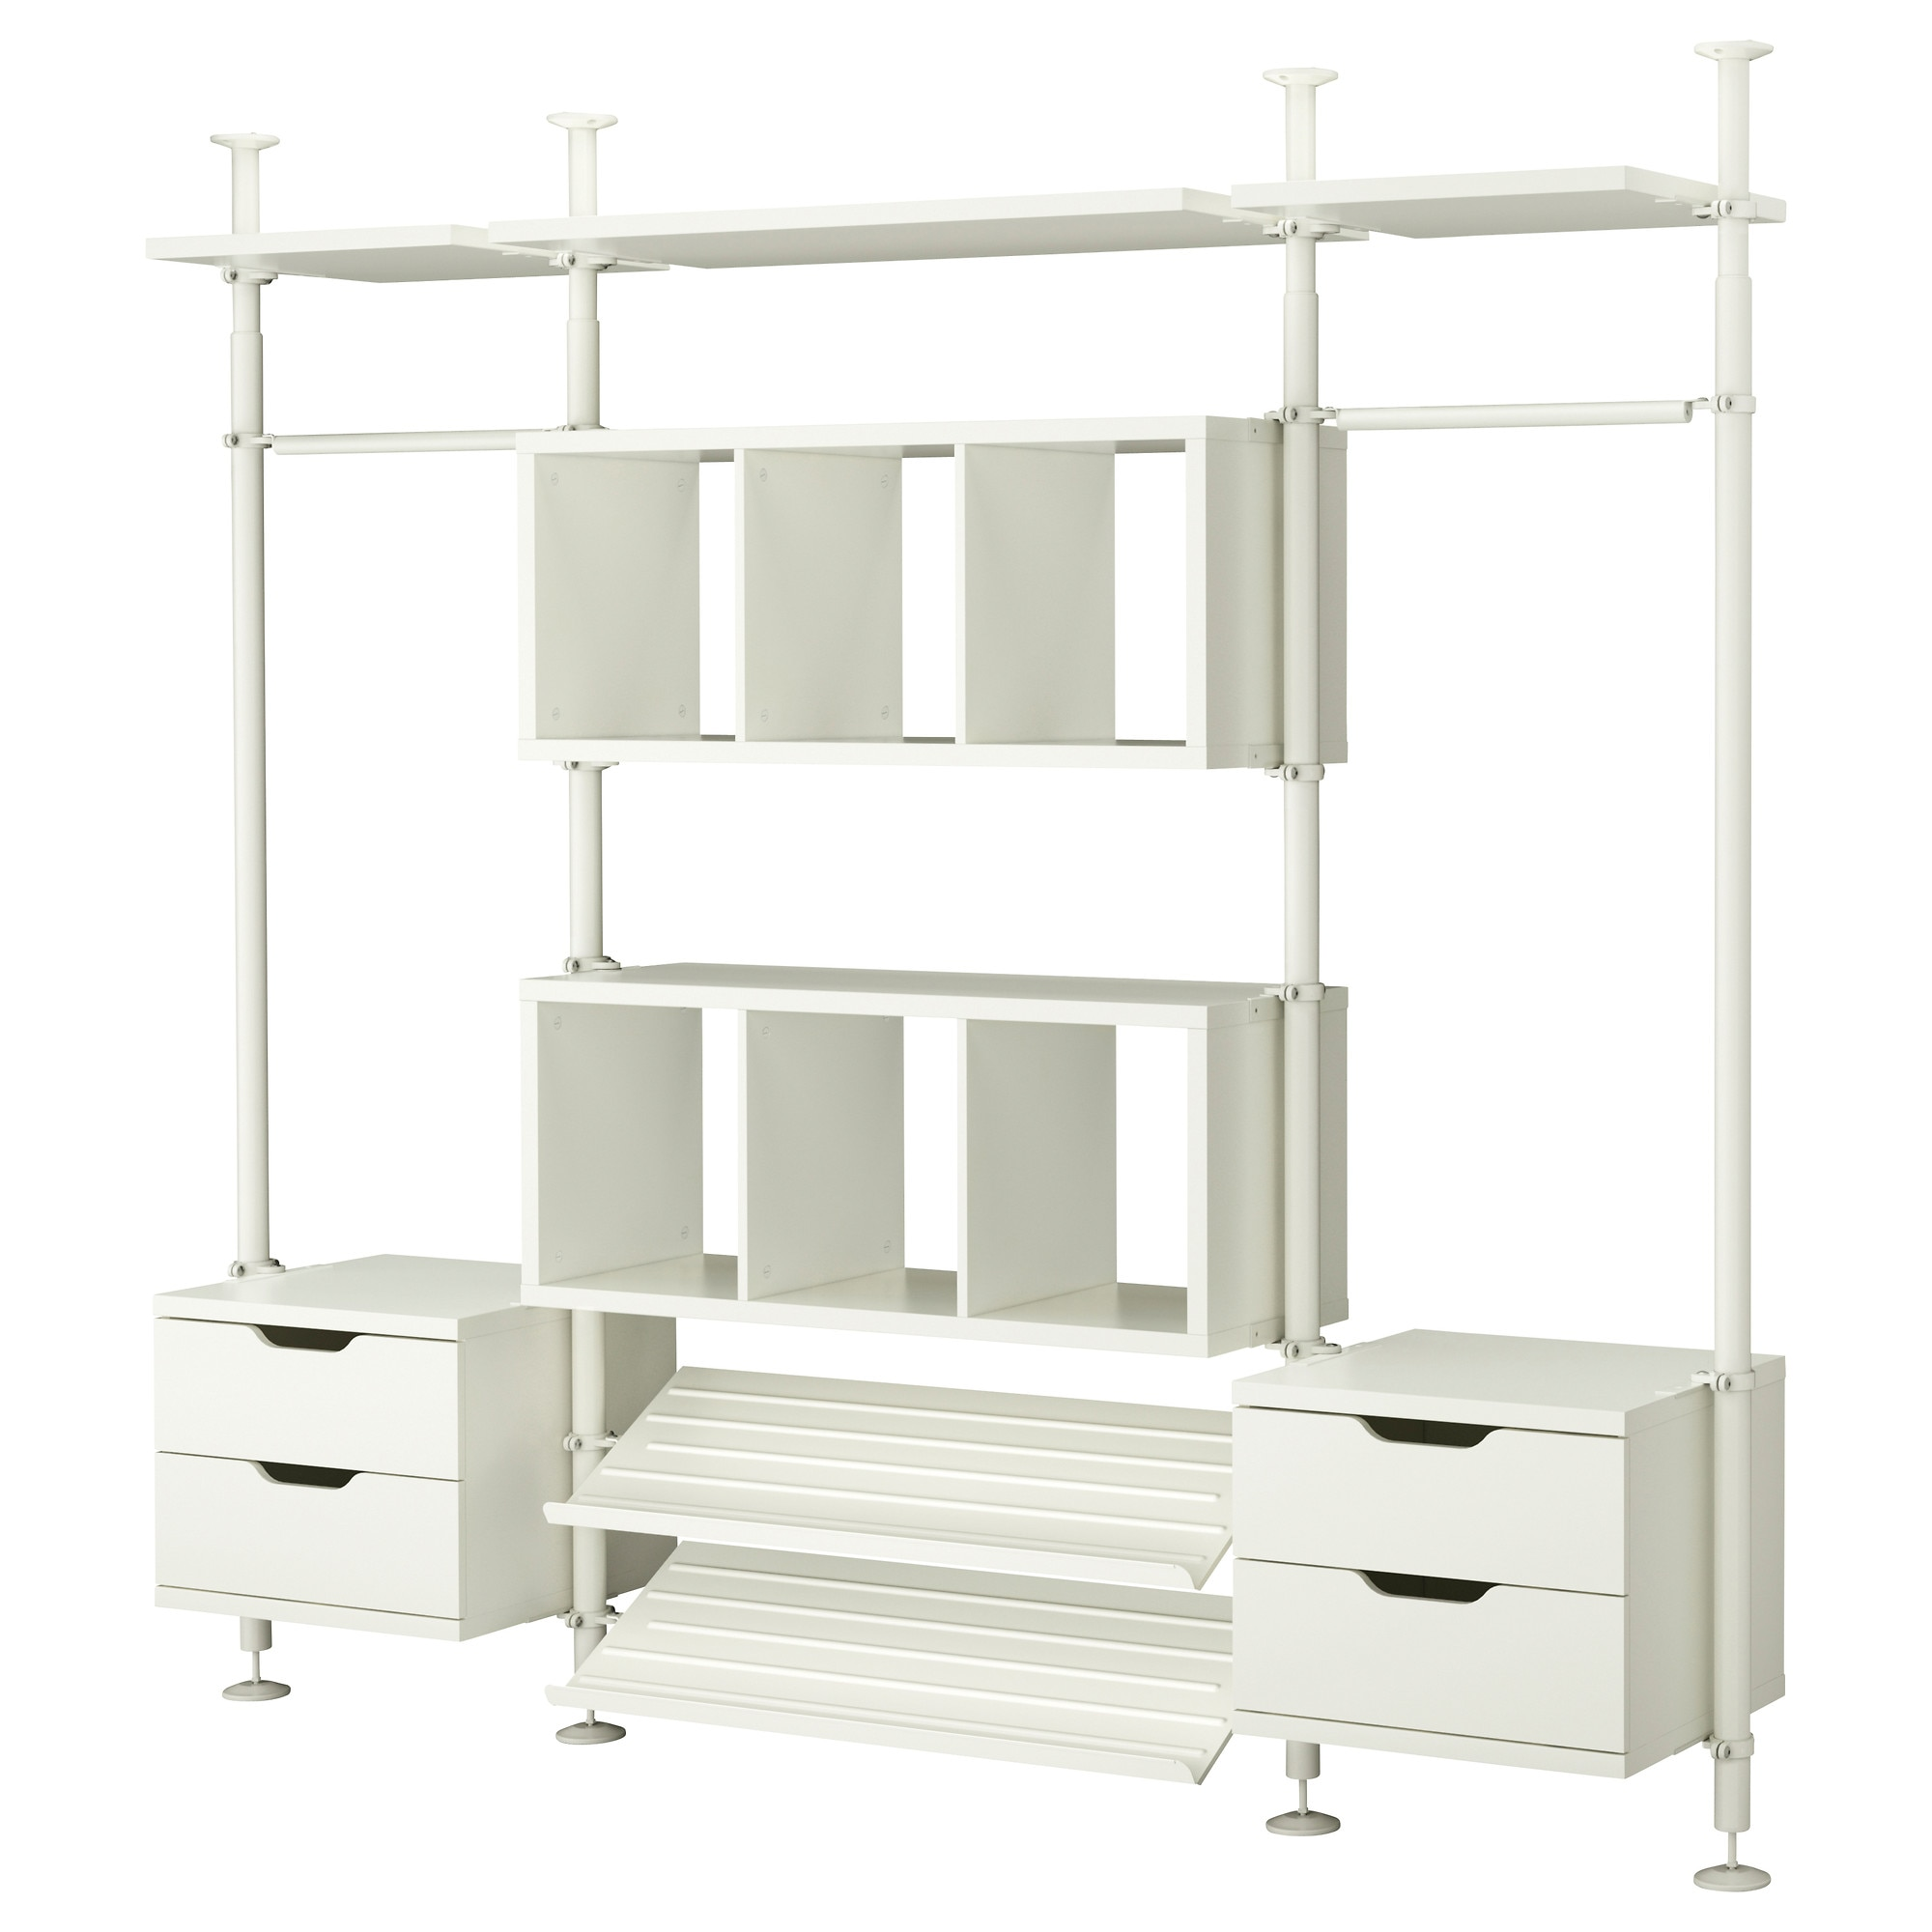 Closet organizer ikeaconfession for Wardrobe organizer ikea